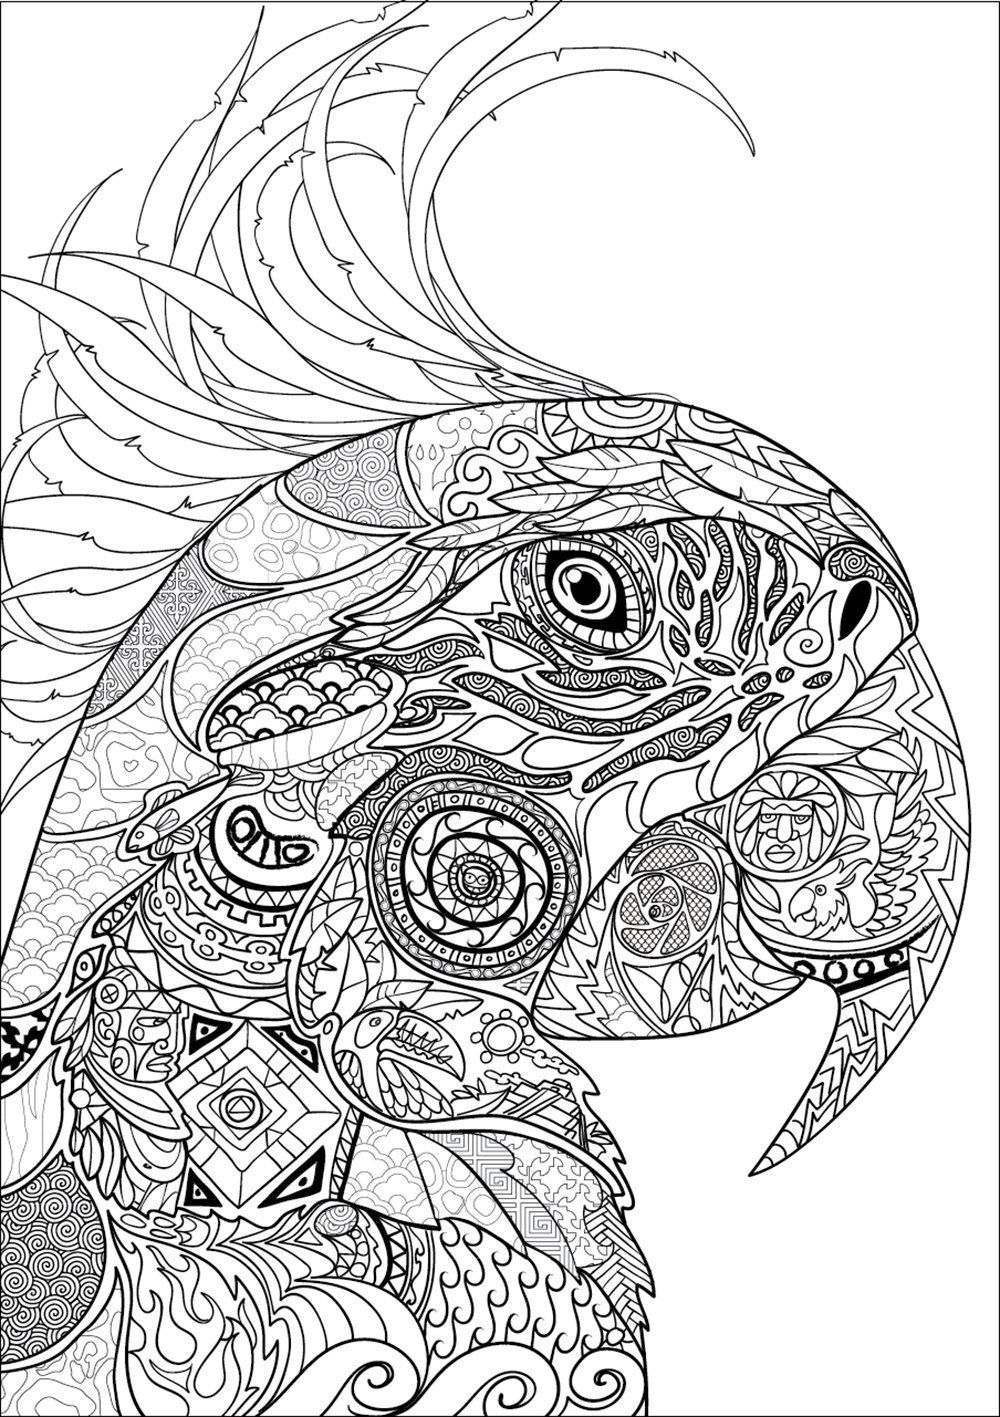 Nouveau Bestiaire Extraordinaire 100 Coloriages Anti Stress Uk Jean Luc Guerin 9782013236621 Books Coloring Pages For Grown Ups Animal Coloring Pages Bird Coloring Pages